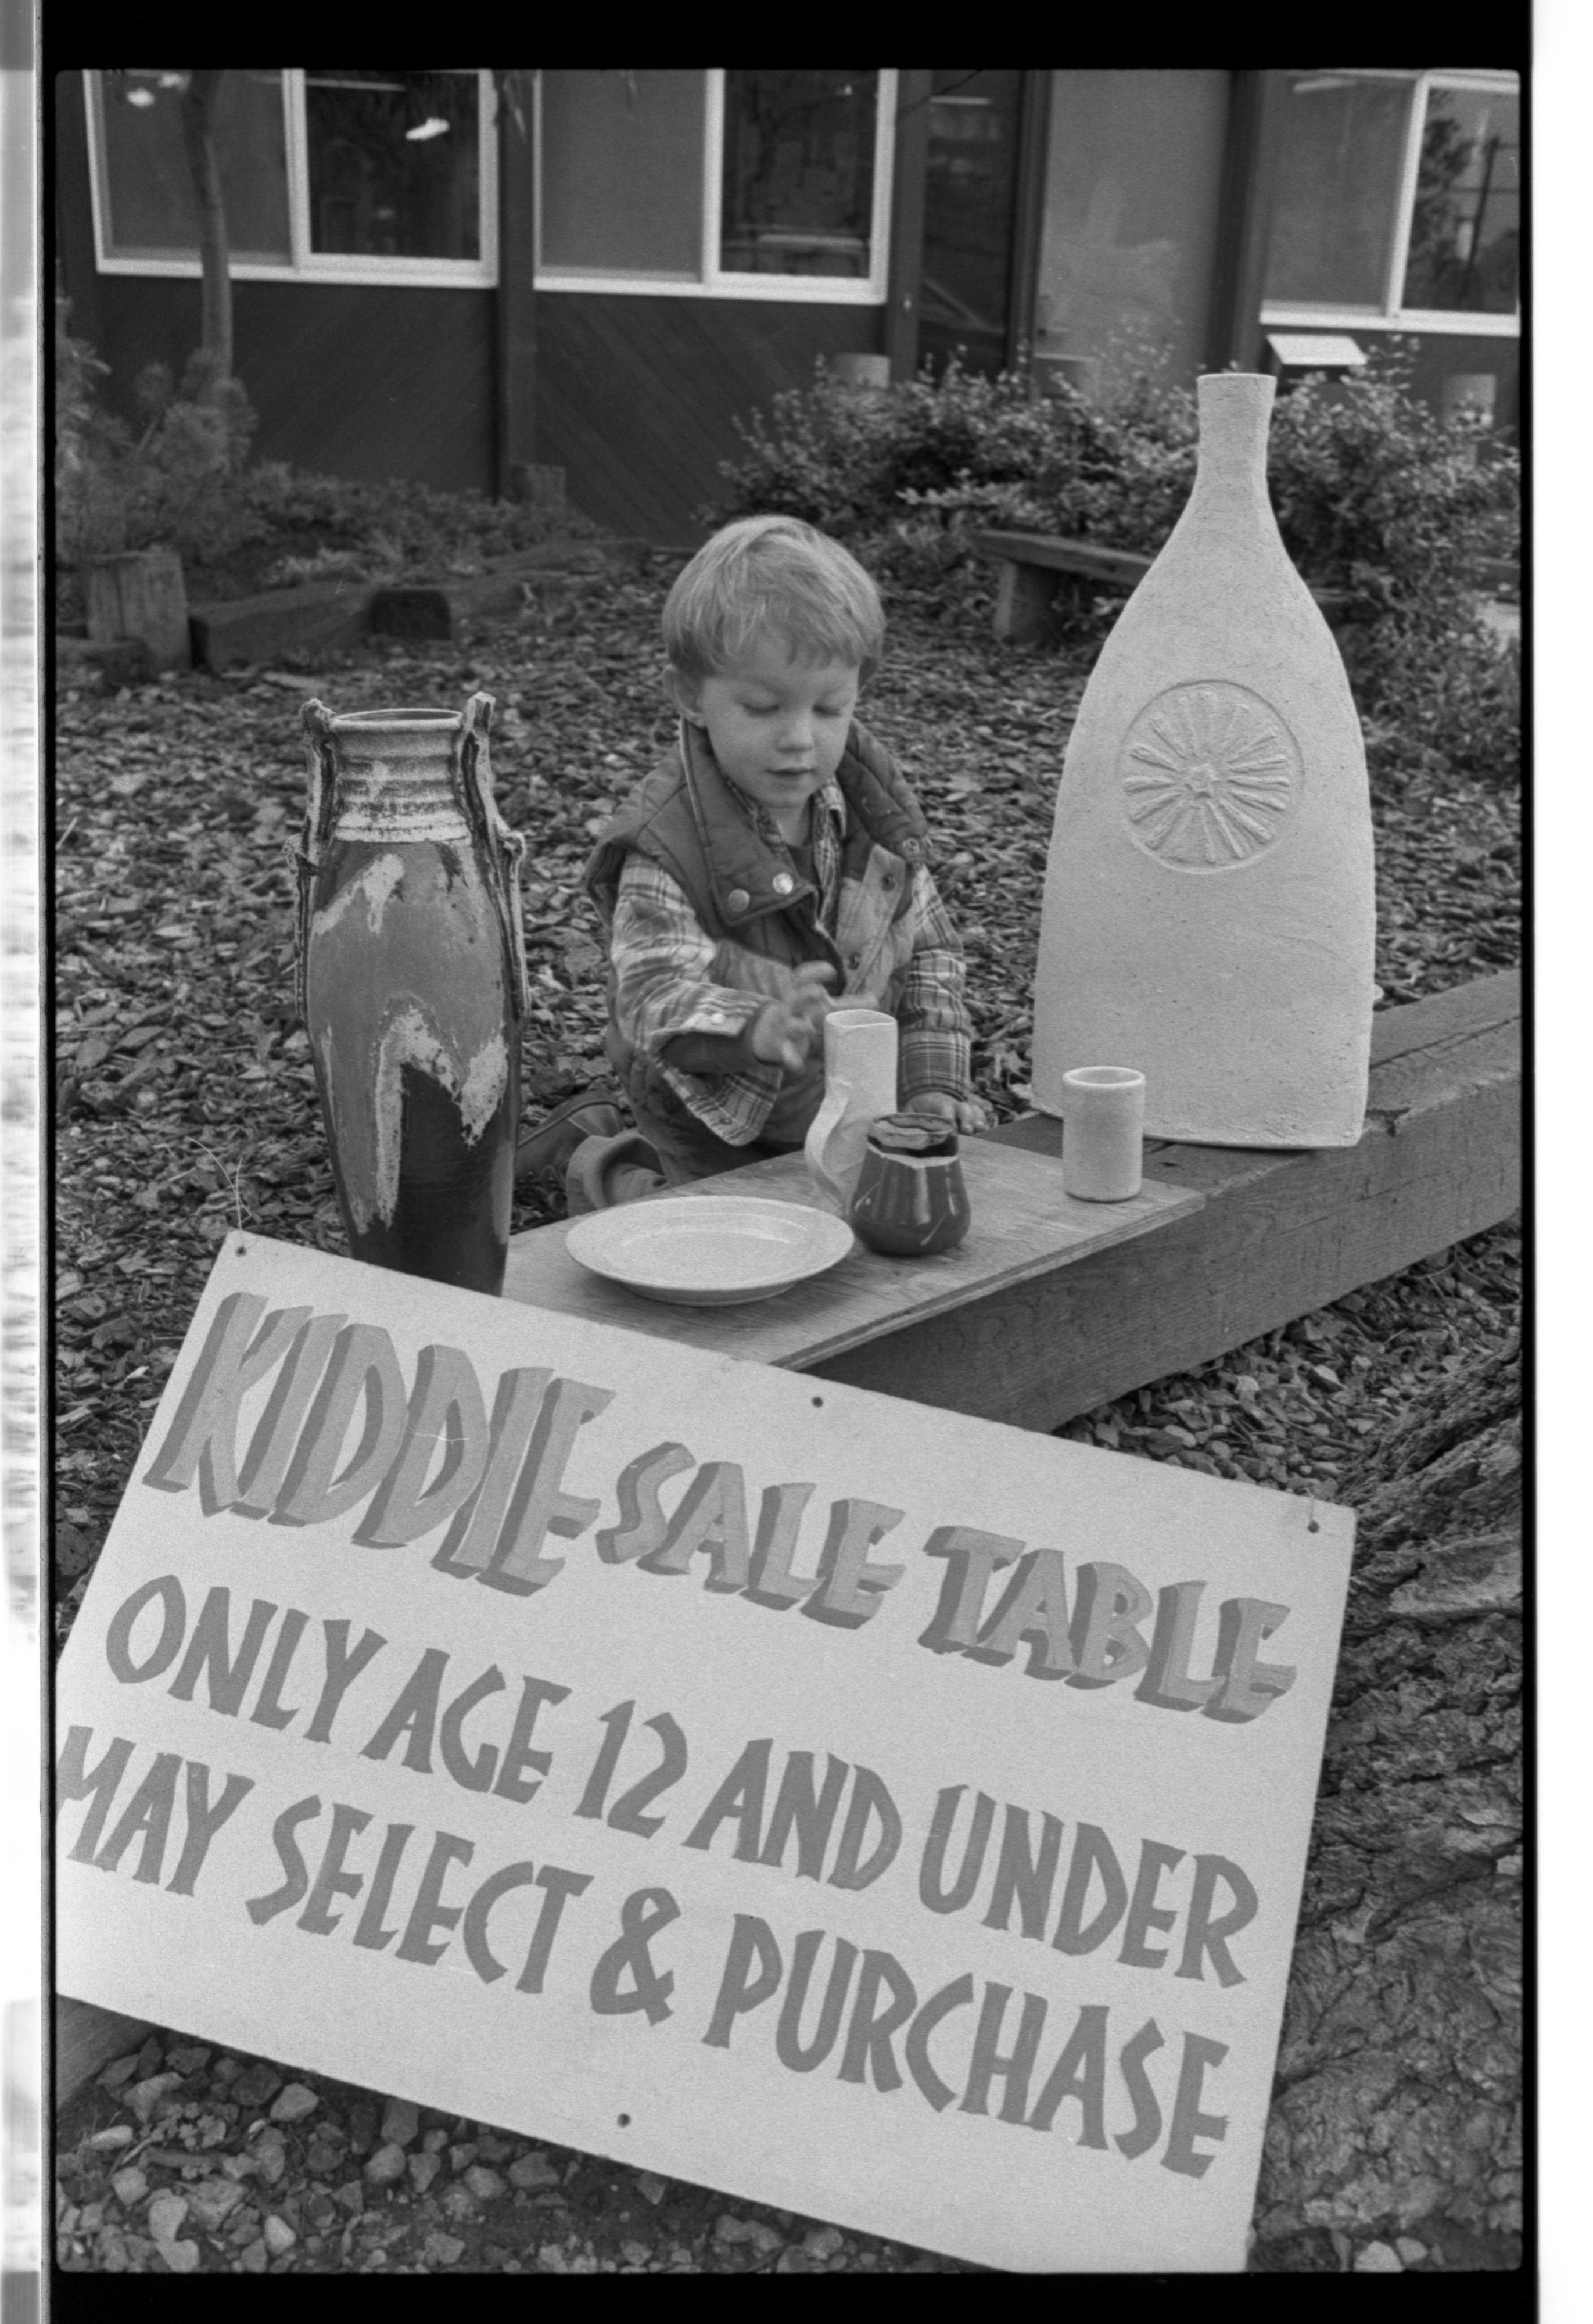 Potters Guild Kiddie Sale Table, May 1986 image